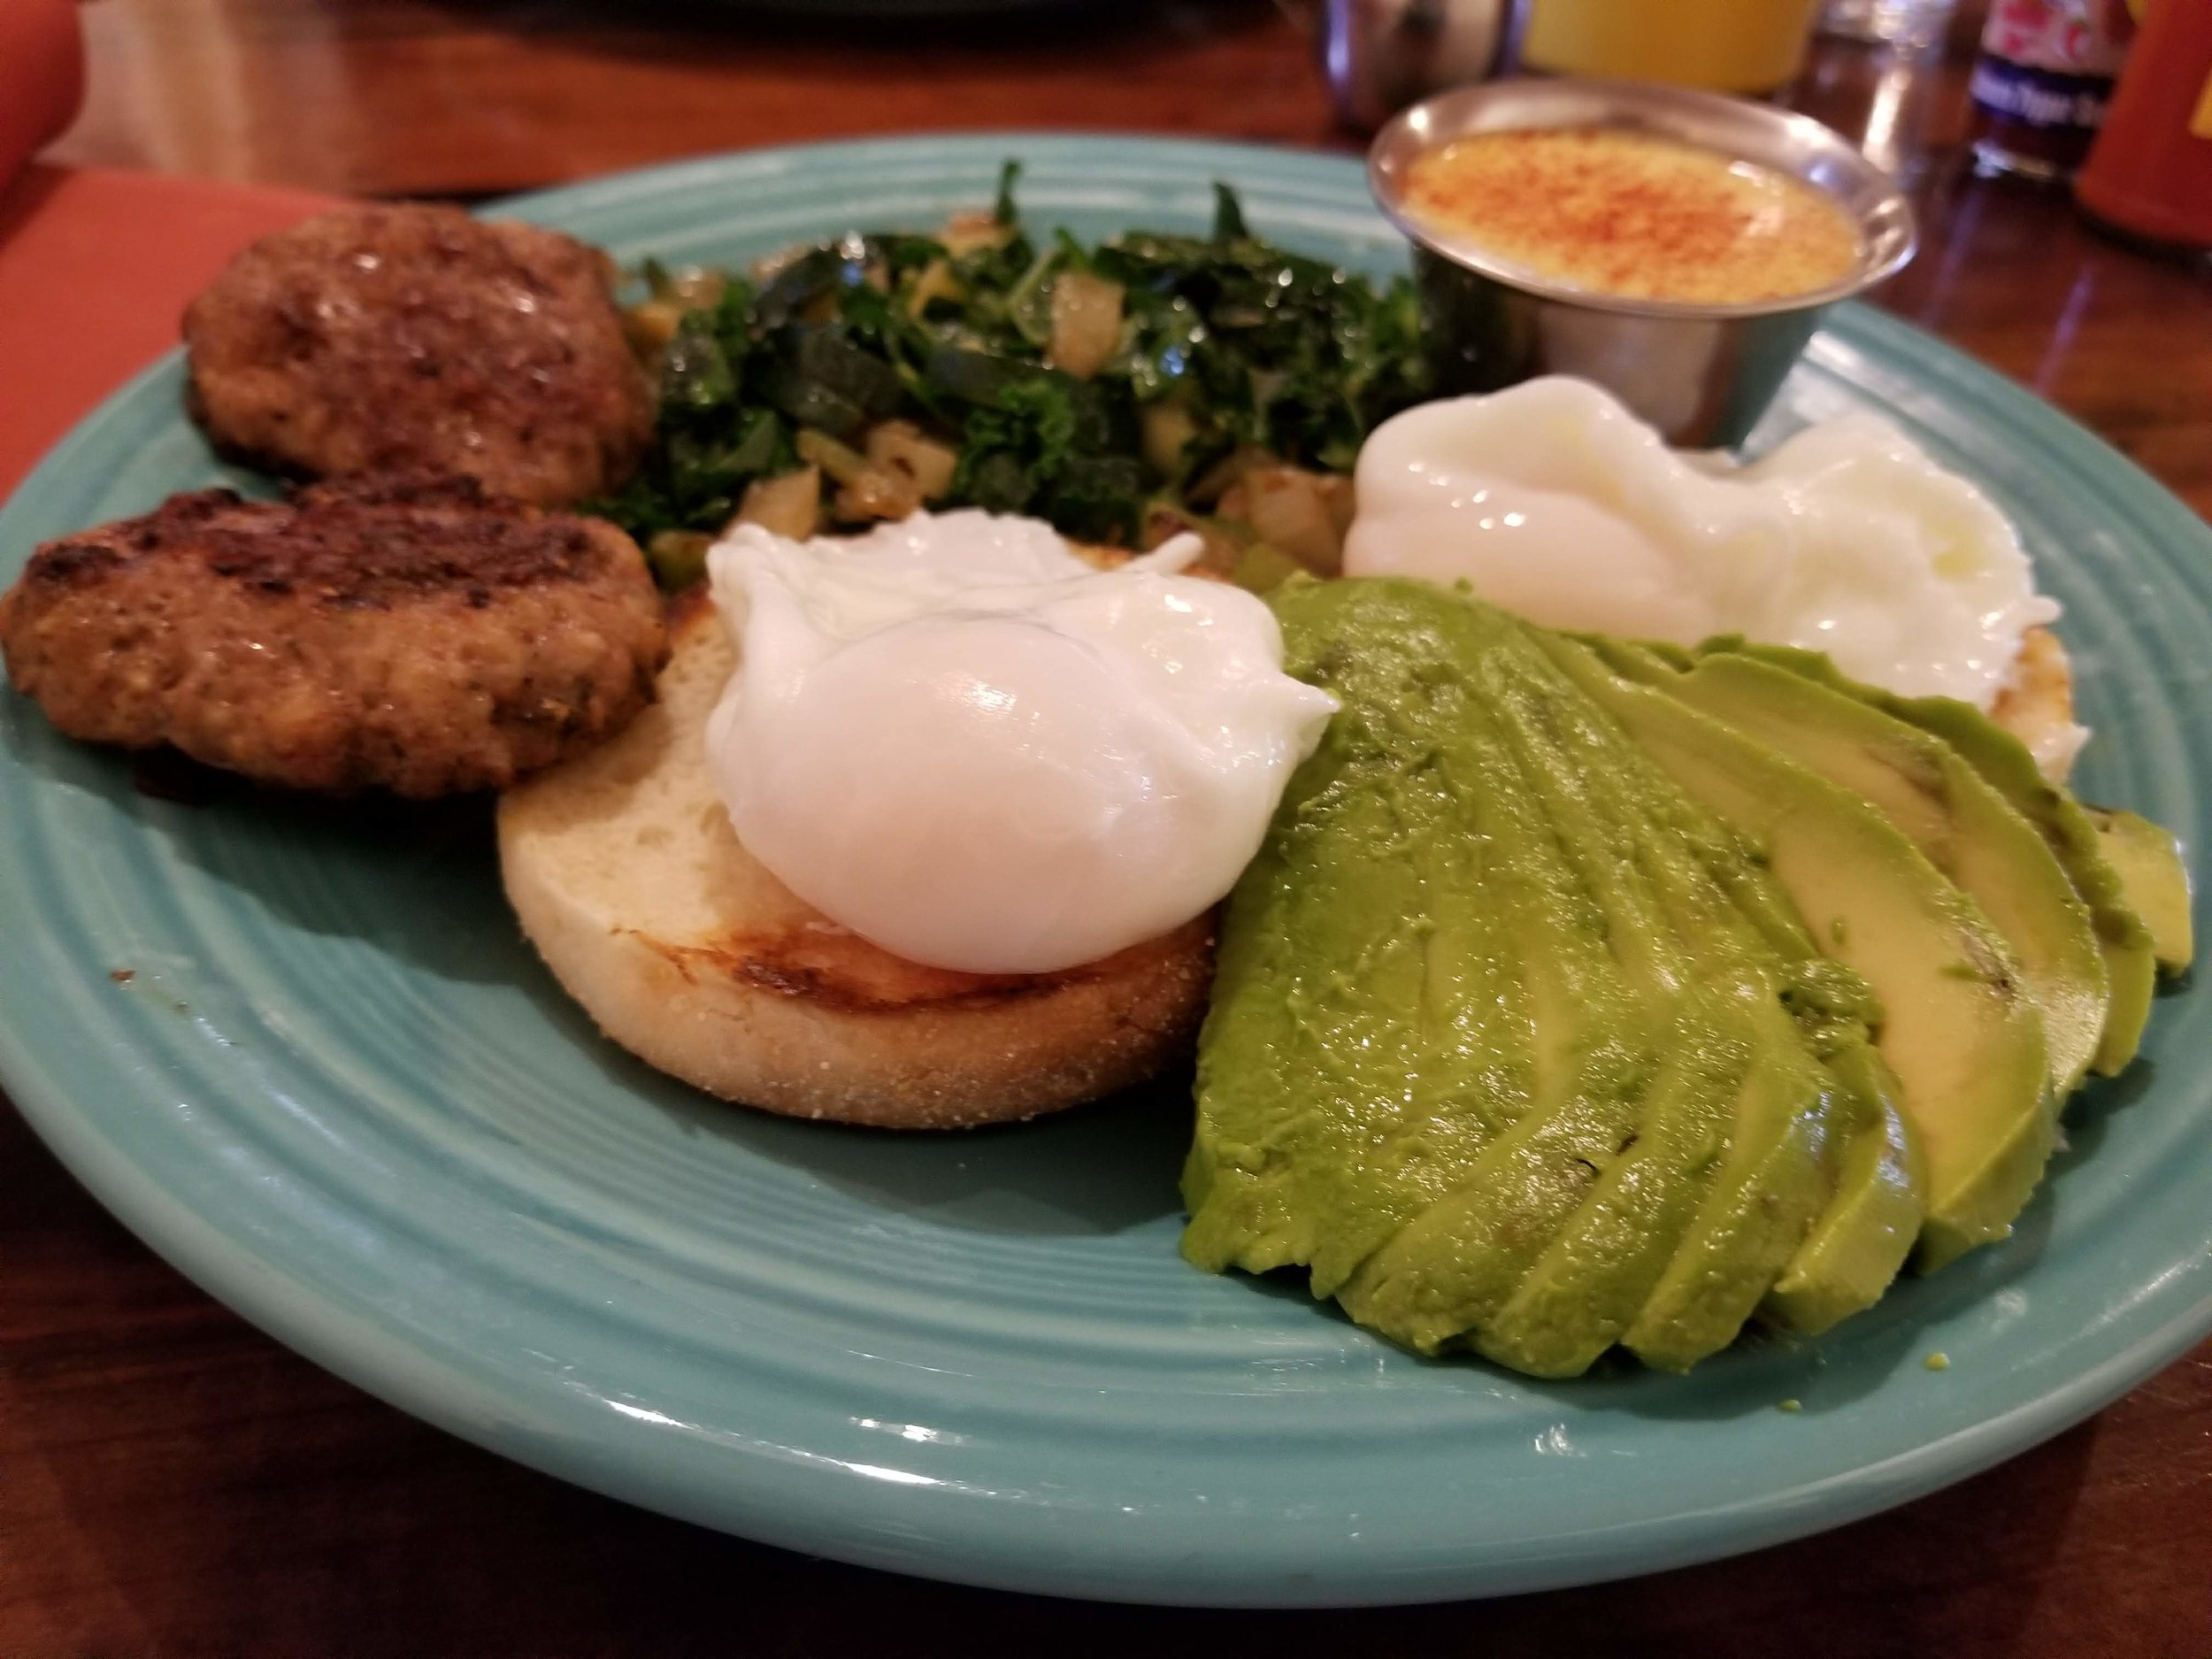 The Farmhouse Cafe dishes up fresh ingredients and uses local whenever possible